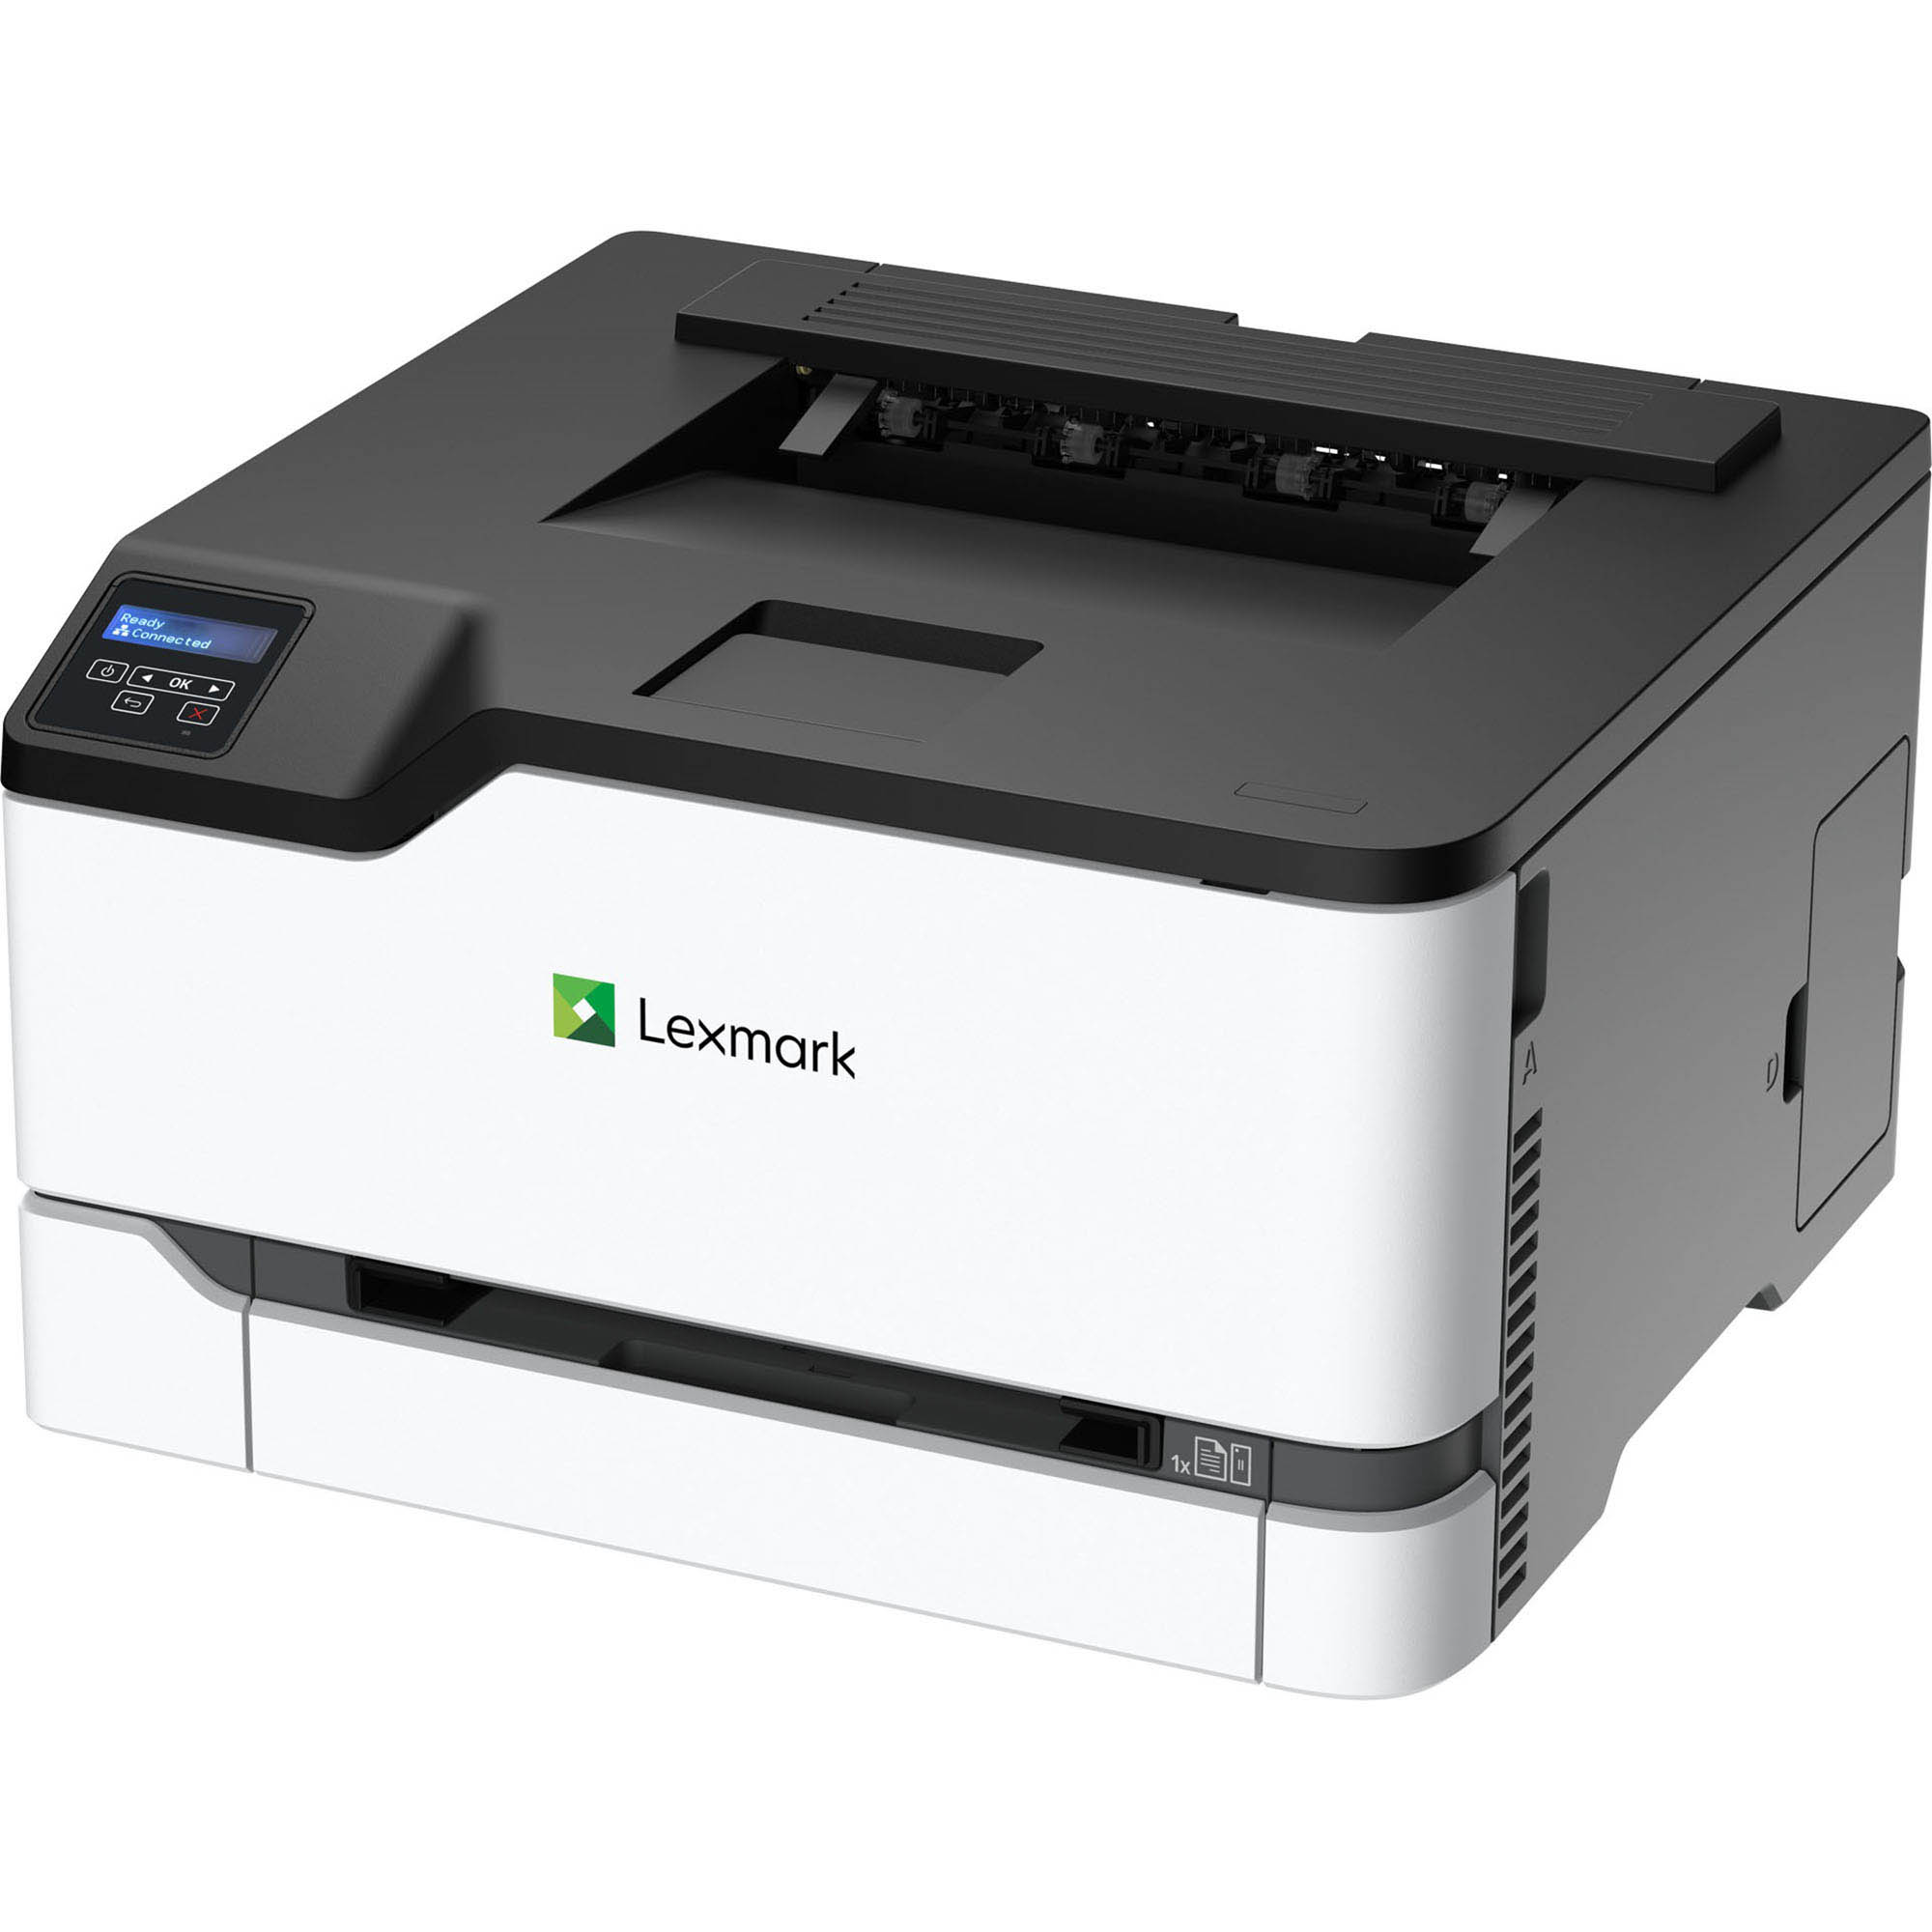 Image for LEXMARK GO LINE C3326DW COLOUR LASER PRINTER A4 from Office Products Depot Macarthur